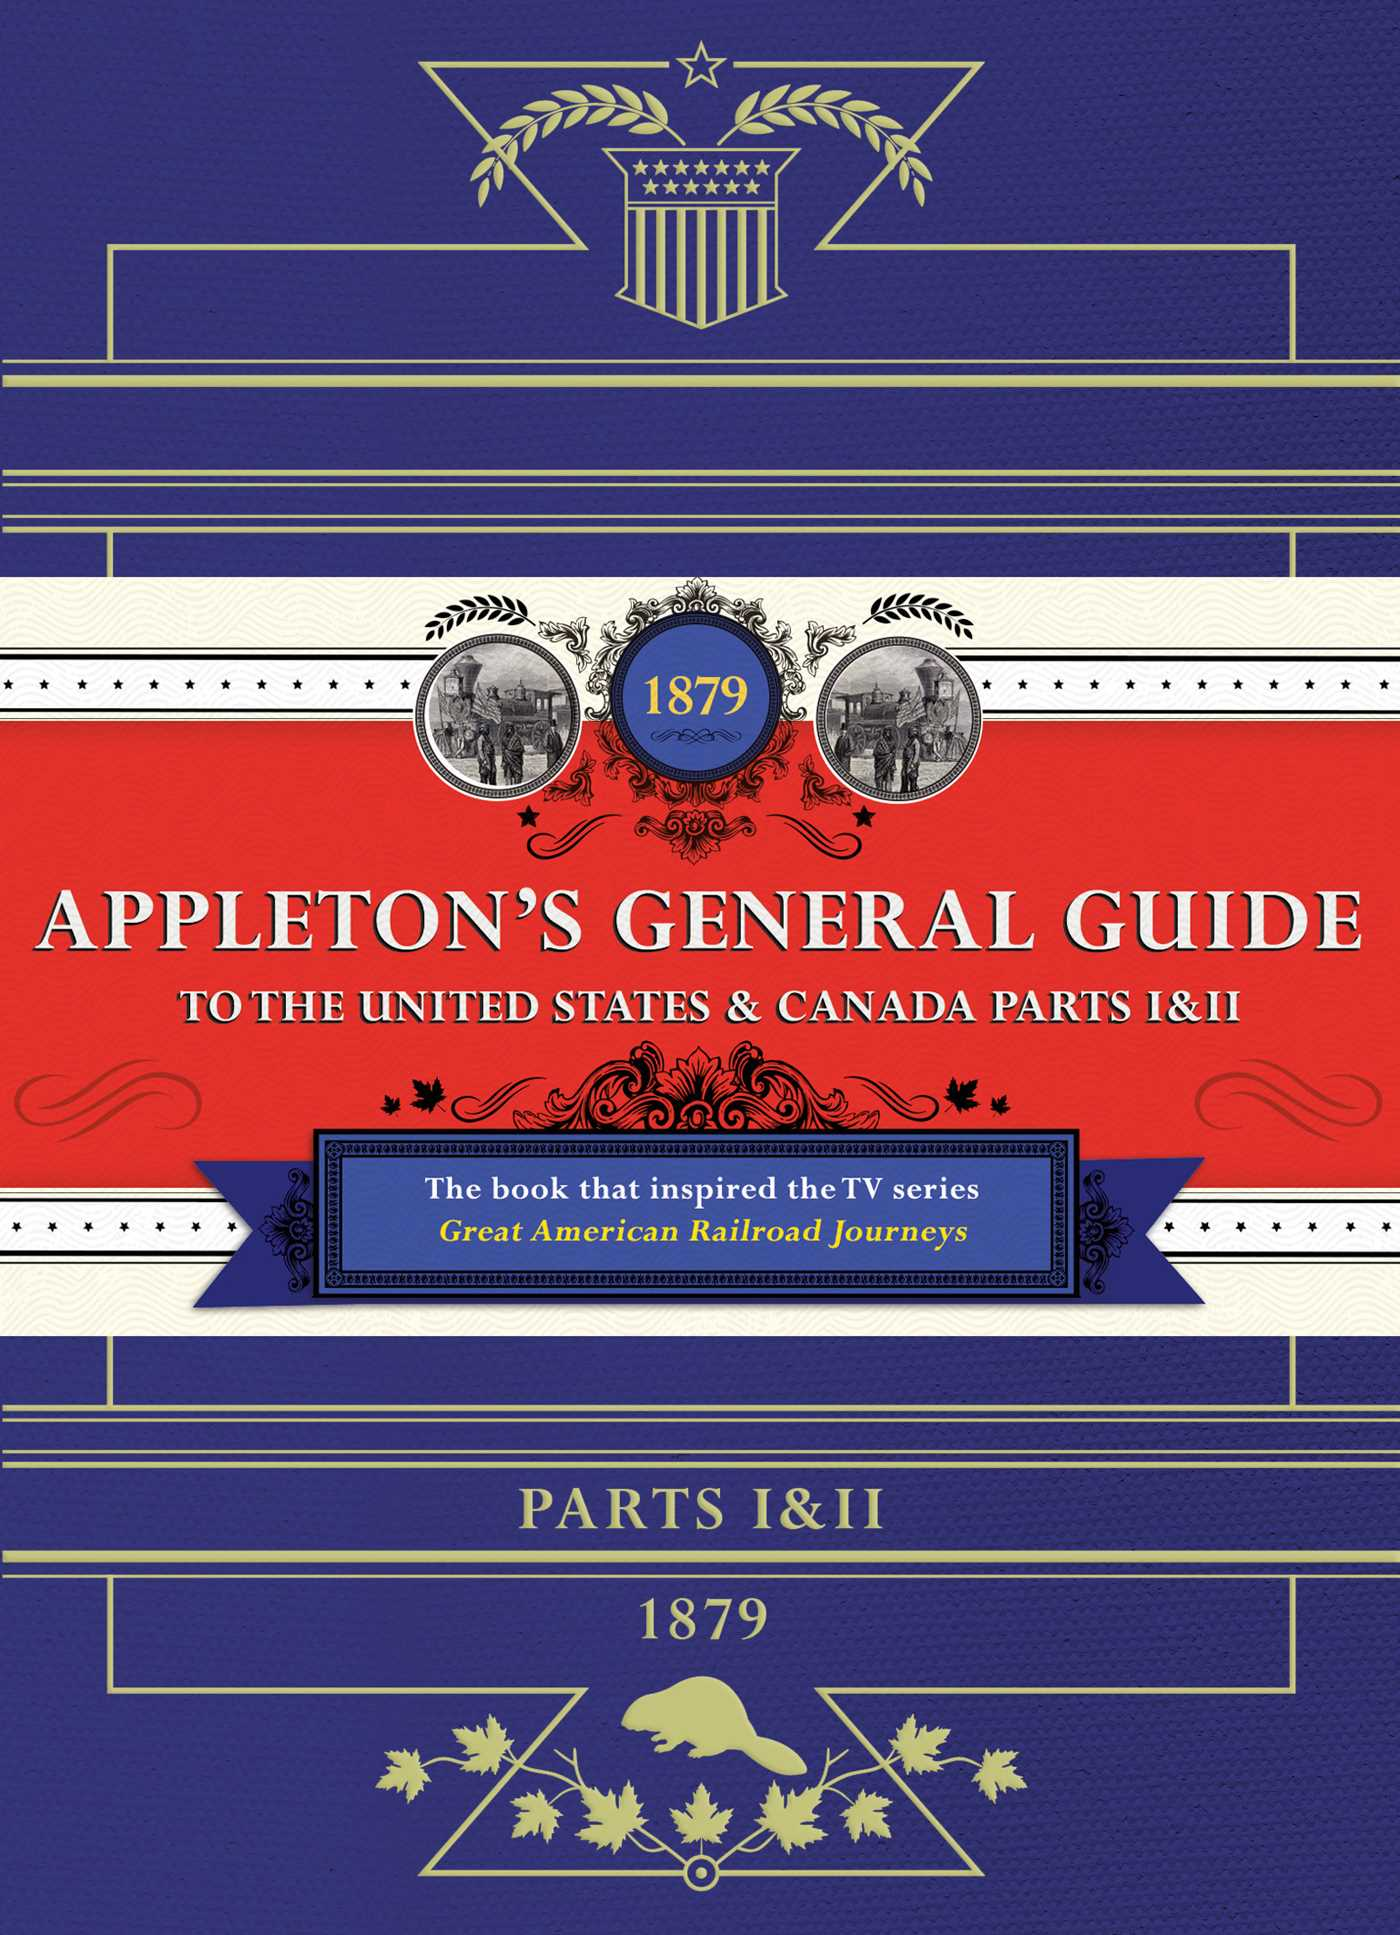 Appletons railway guide to the usa and canada 9781471159947 hr